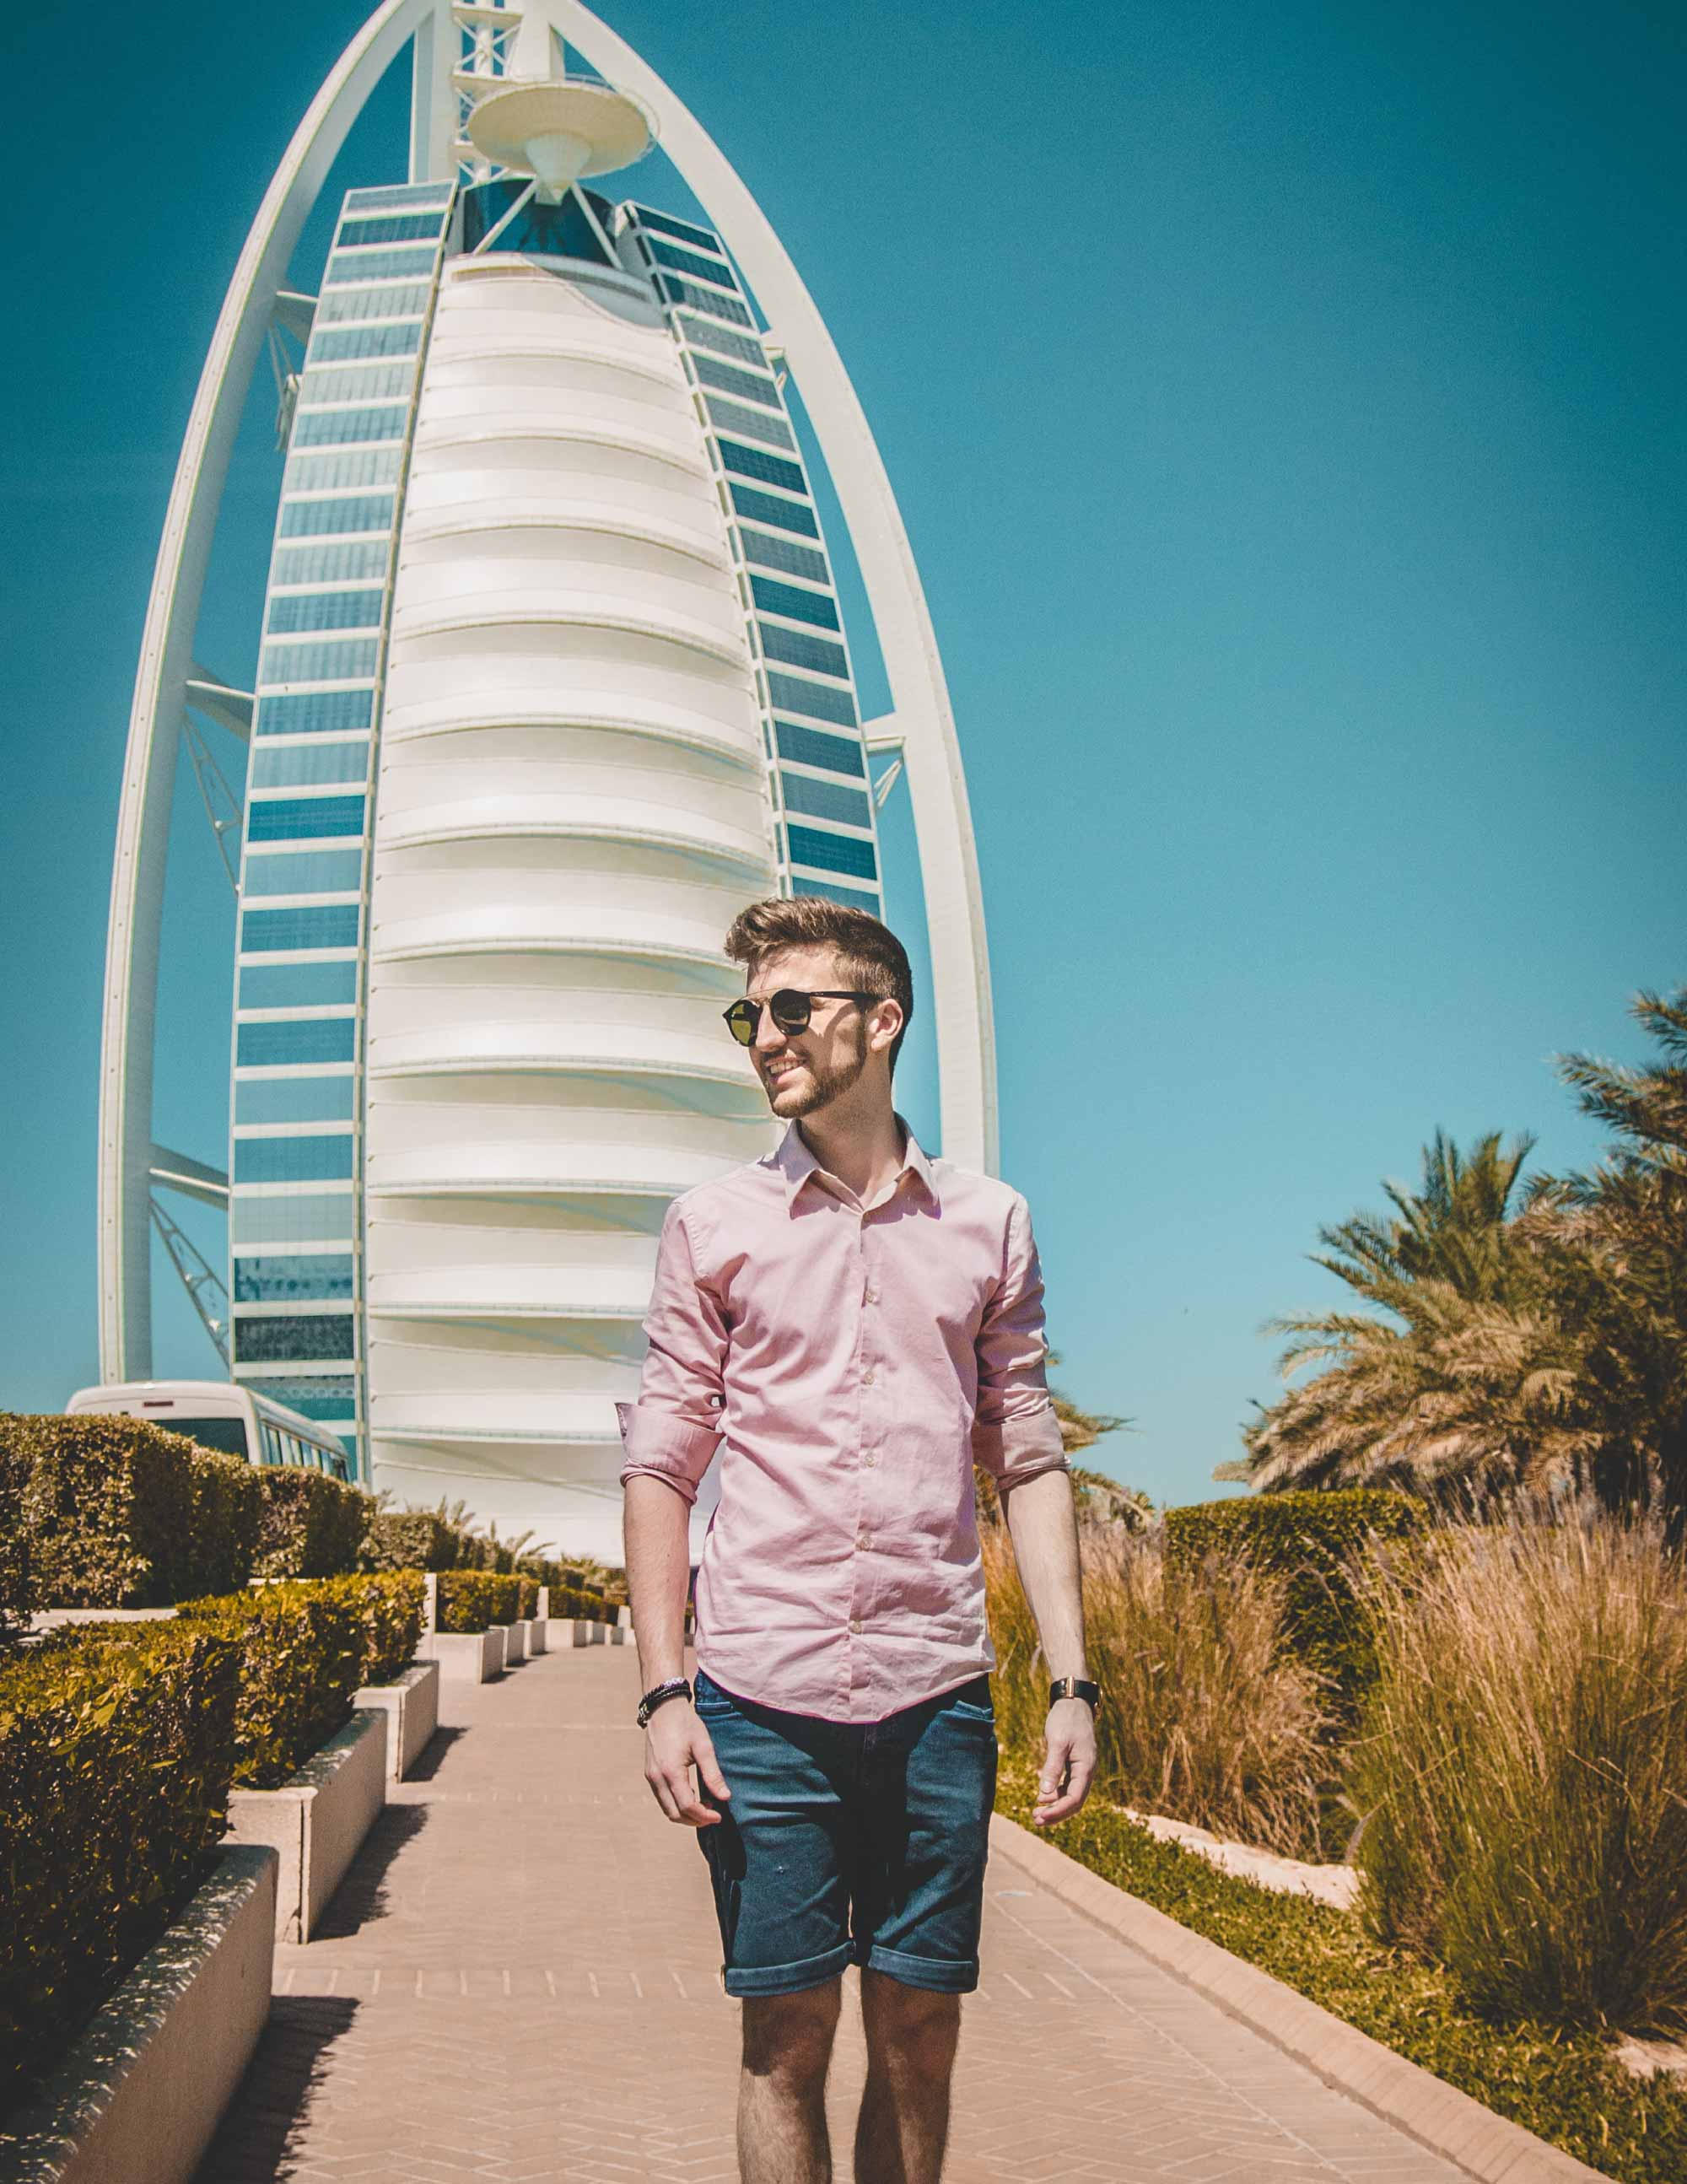 a young man in a pink shirt walks along a planted path in front of the Burj Al Arab in Dubai